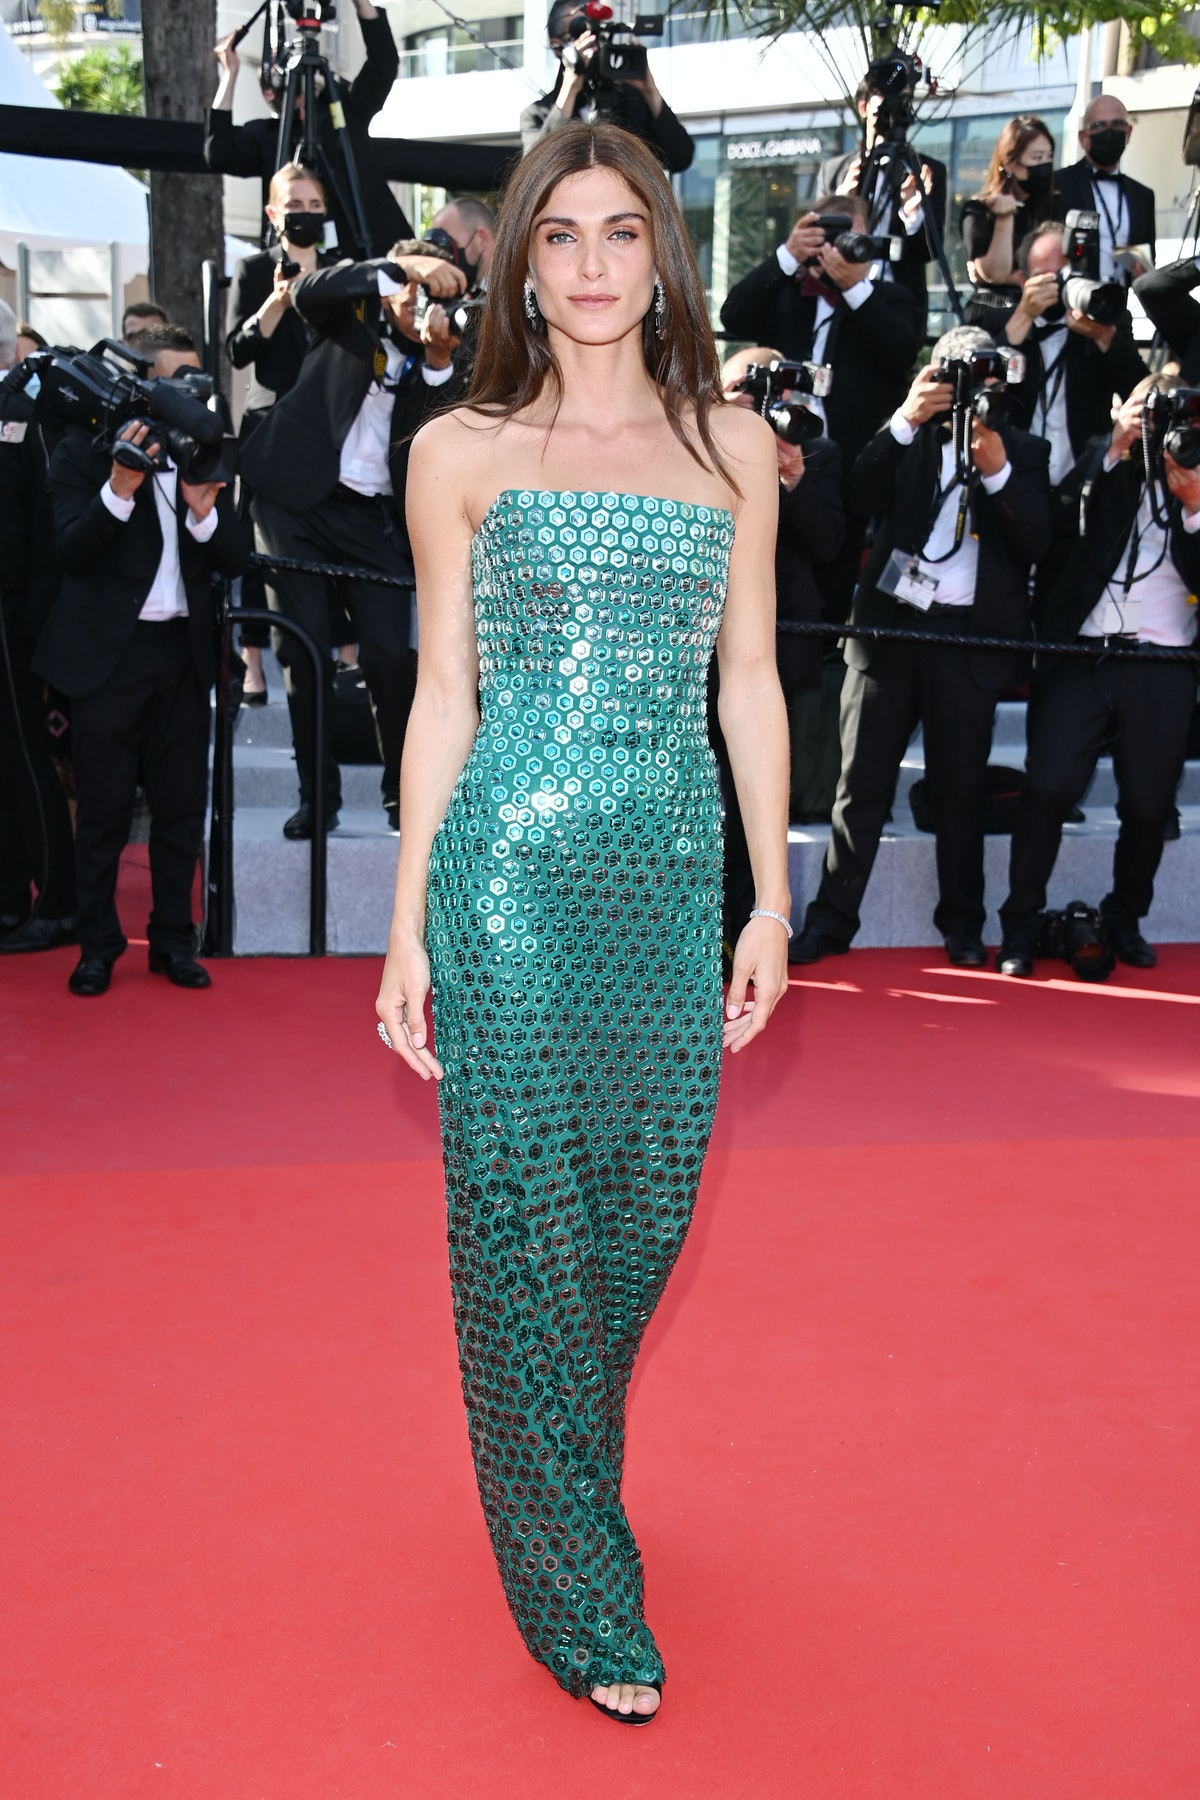 """CANNES, FRANCE - JULY 06 Elisa Sednaoui attends the """"Annette"""" screening and opening ceremony during the 74th annual Cannes Film Festival on July 06, 2021 in Cannes, France. (Photo by Stephane Cardinale - Corbis/Corbis via Getty Images)"""